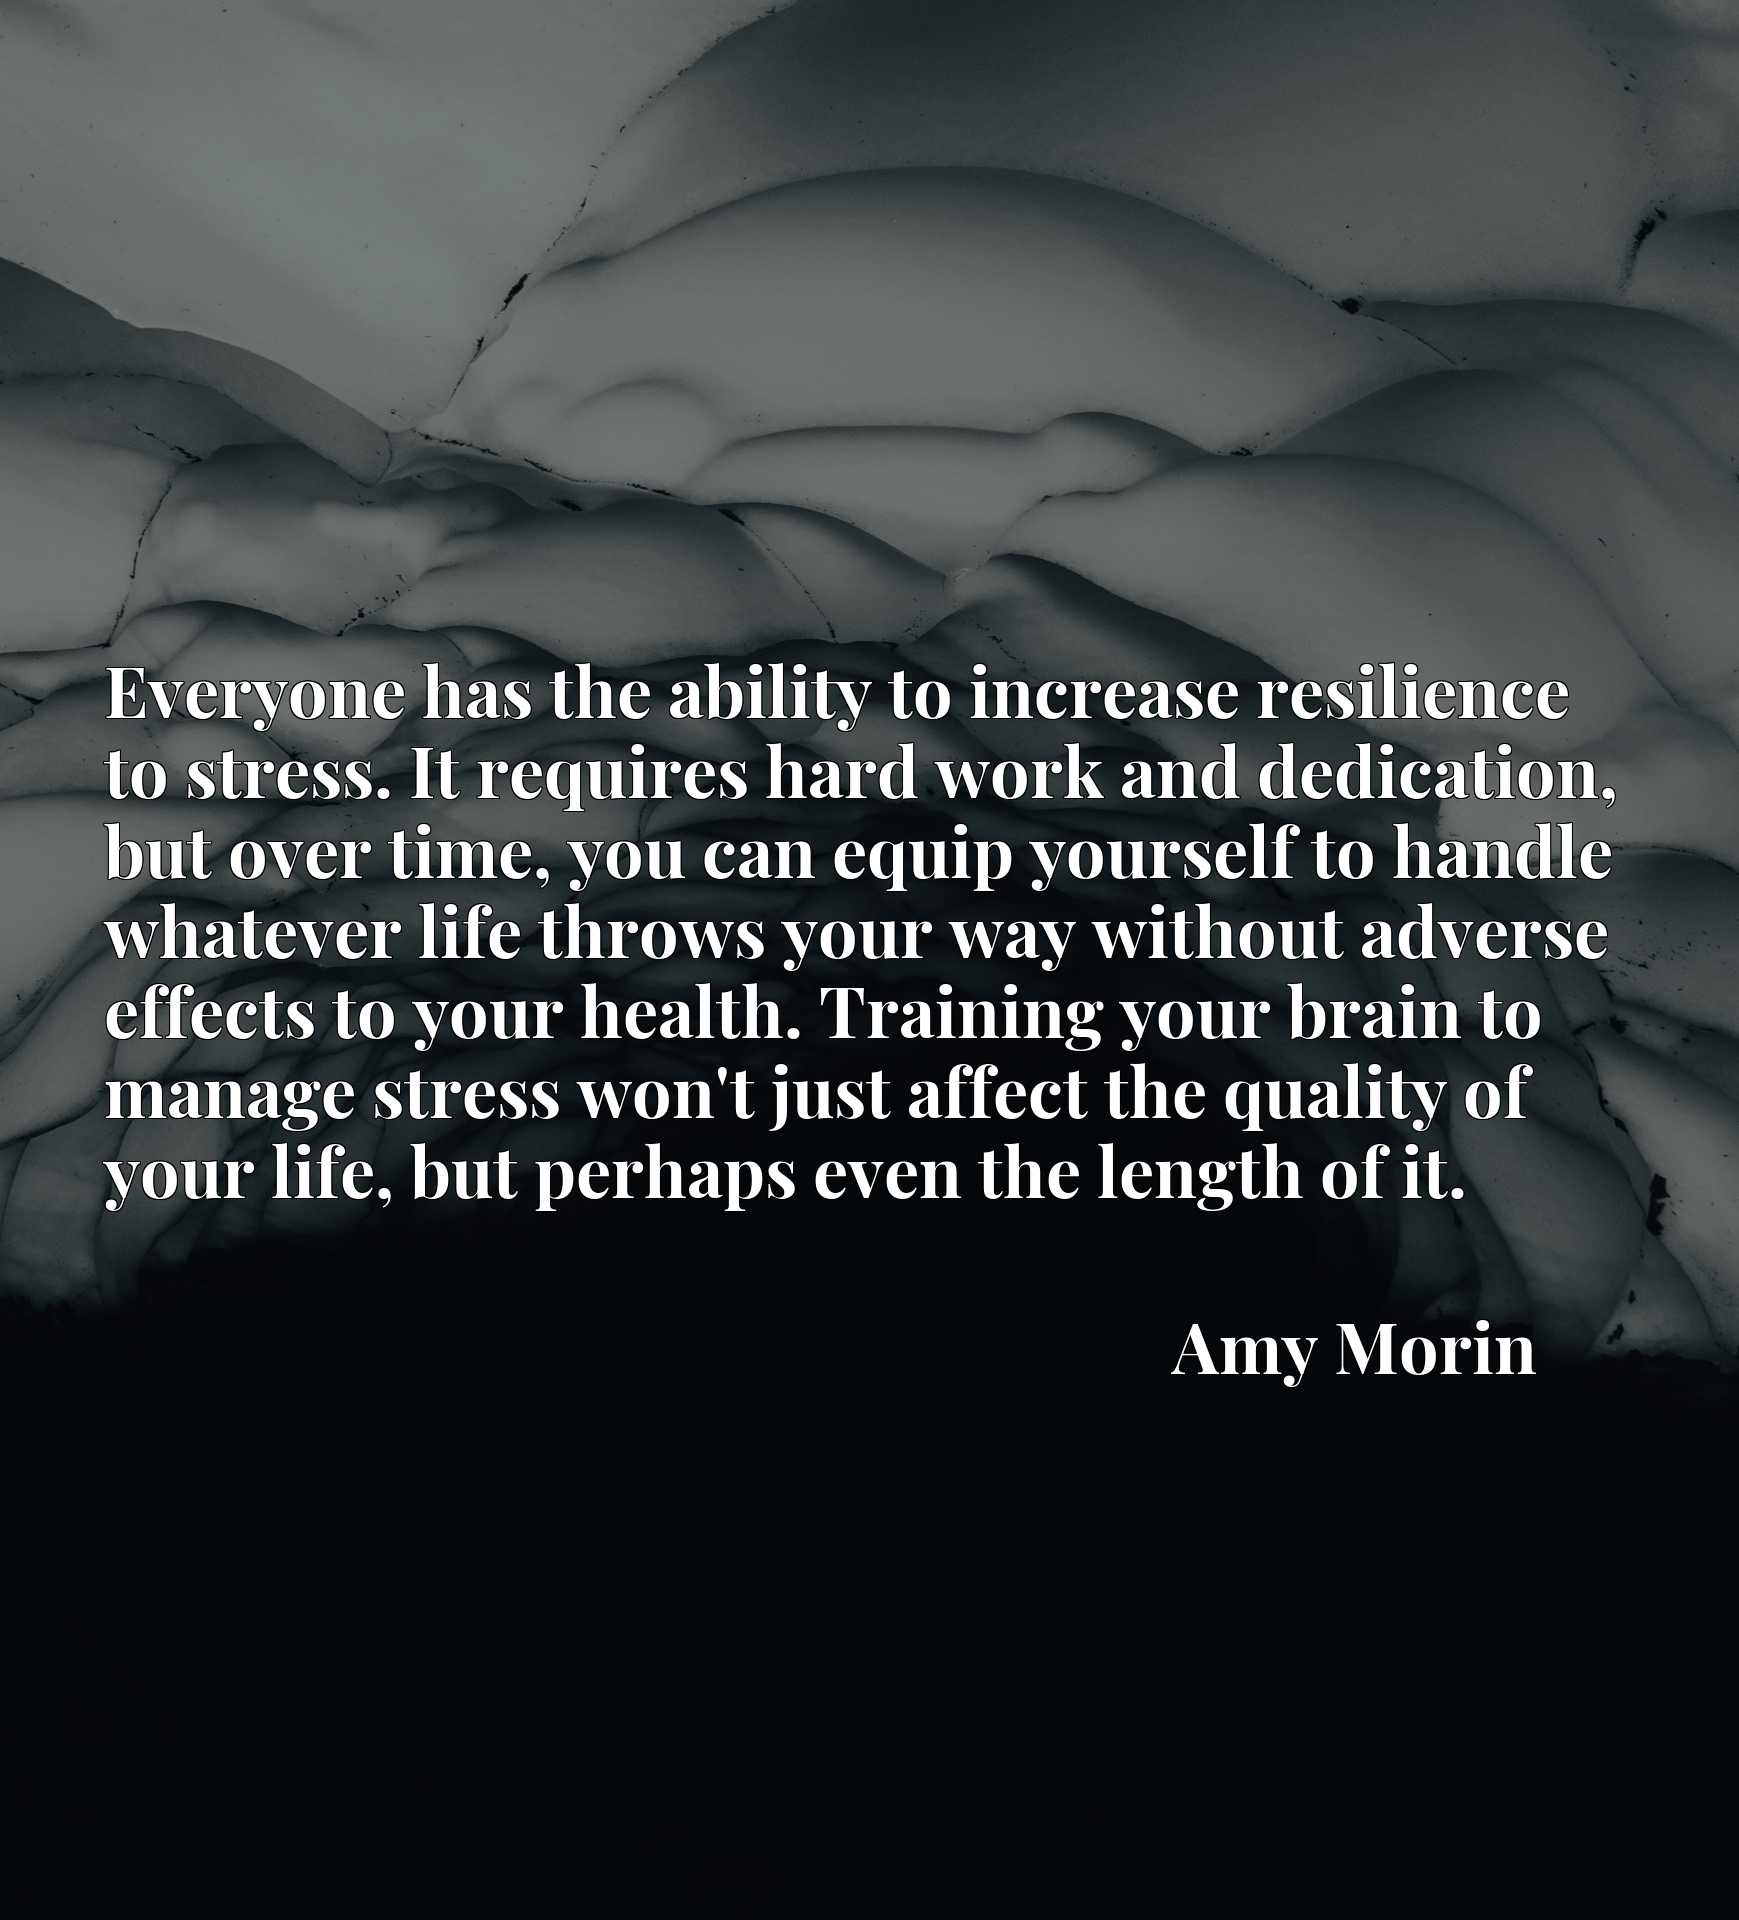 Everyone has the ability to increase resilience to stress. It requires hard work and dedication, but over time, you can equip yourself to handle whatever life throws your way without adverse effects to your health. Training your brain to manage stress won't just affect the quality of your life, but perhaps even the length of it.